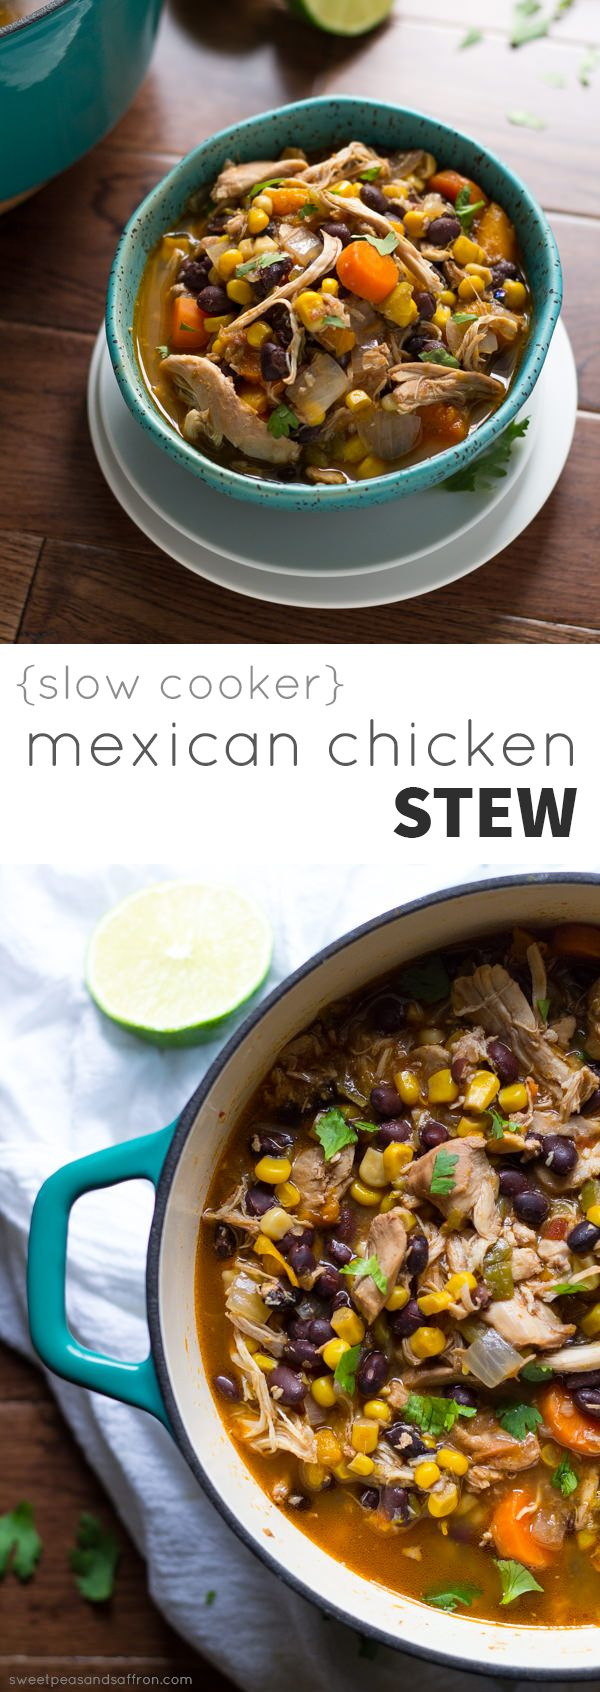 Slow Cooker Mexican Chicken Stew, inspired by tortilla soup!  @sweetpeasaffron